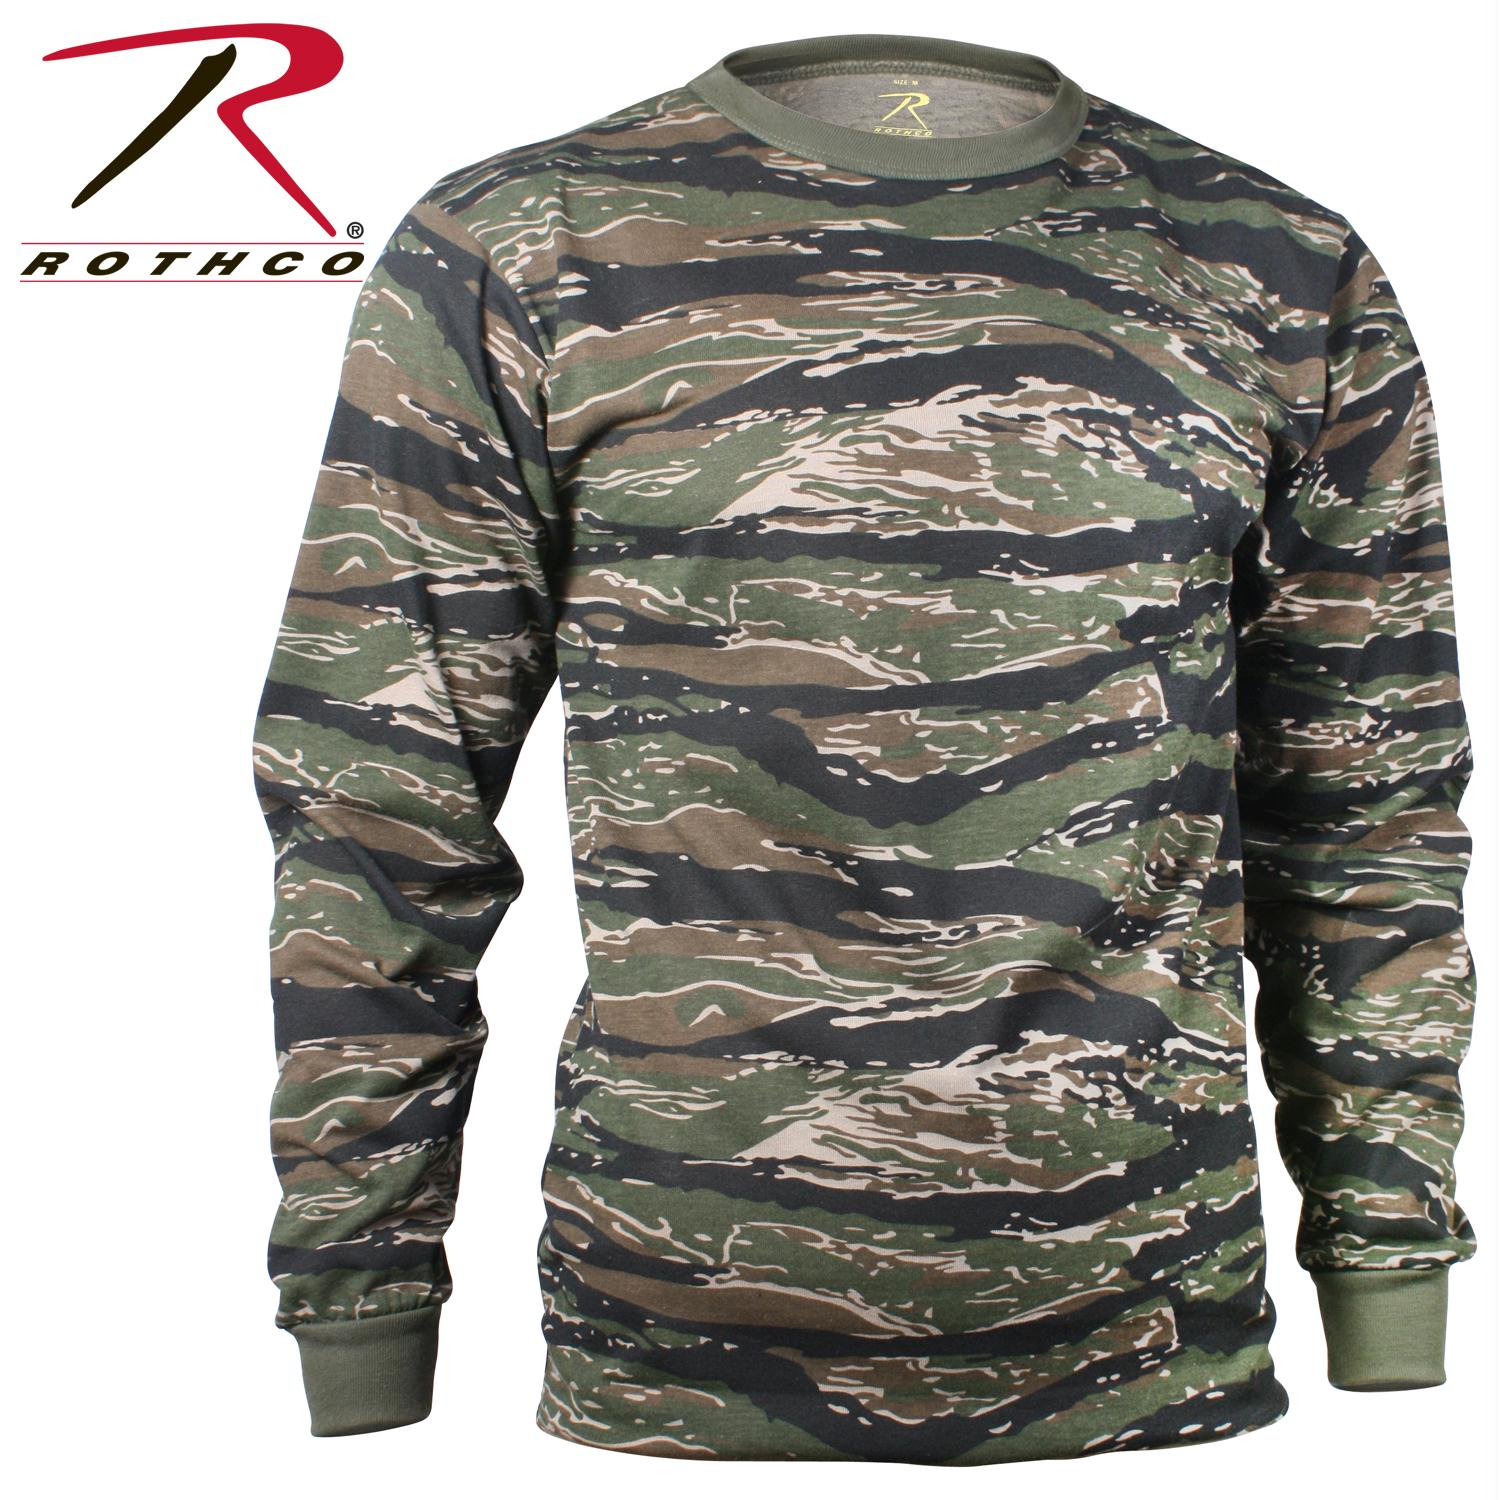 Rothco Long Sleeve Camo T-Shirt - Tiger Stripe Camo / 4XL